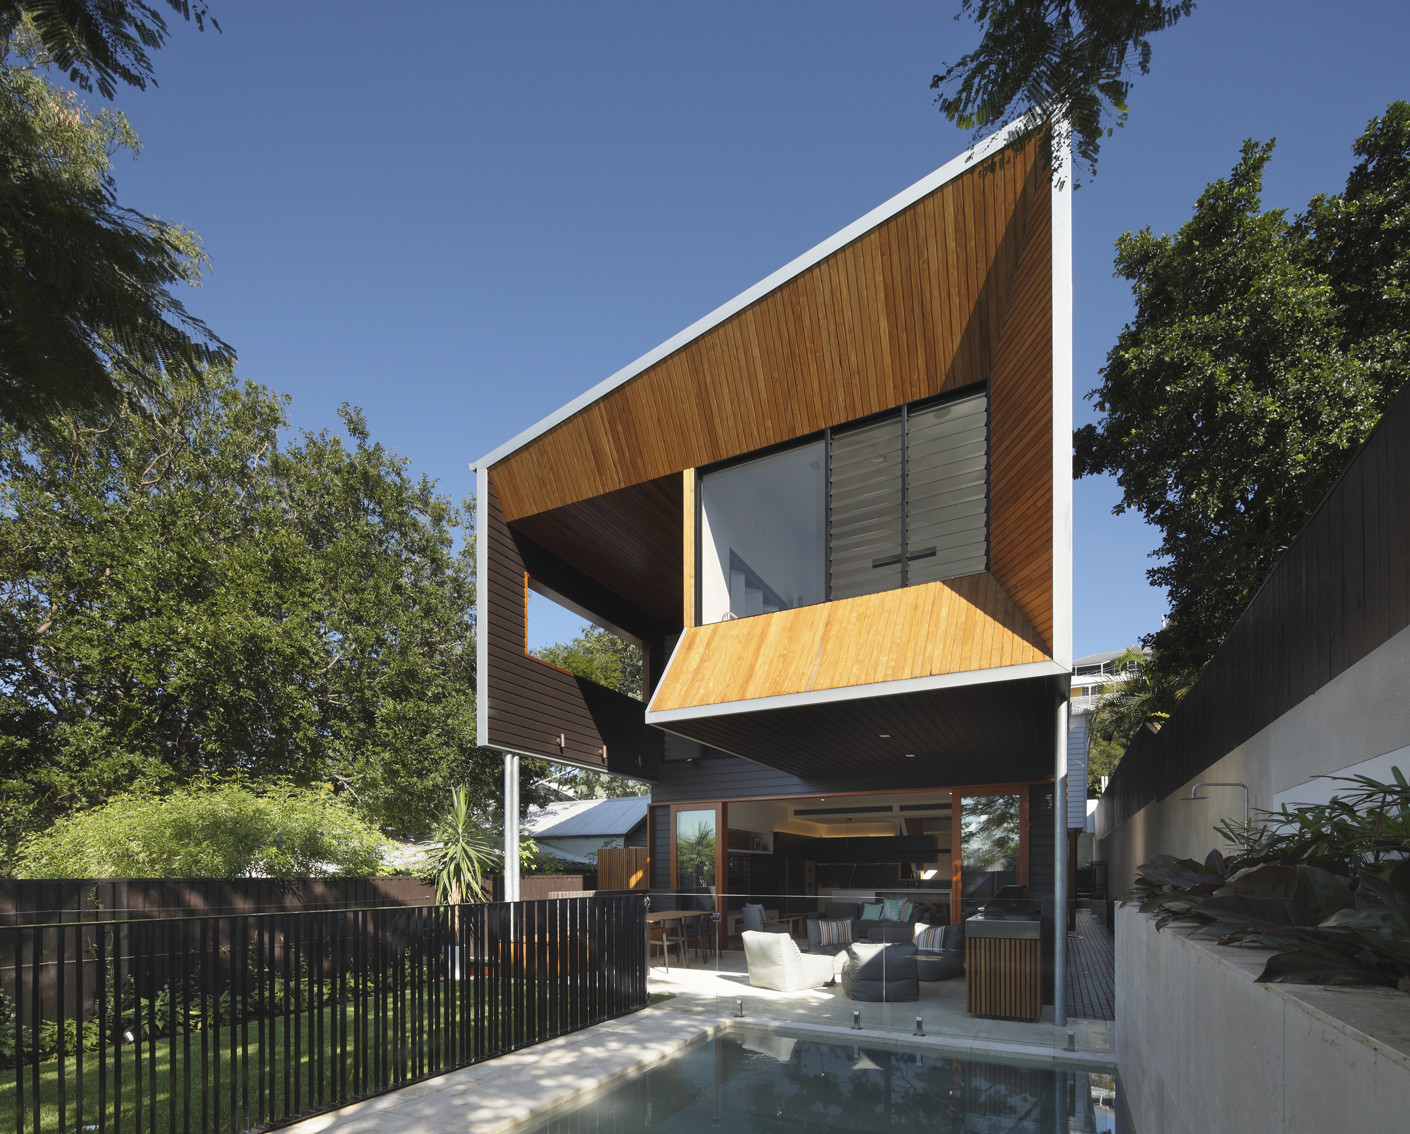 Wilden st house shaun lockyer architects archdaily for Dynamic house